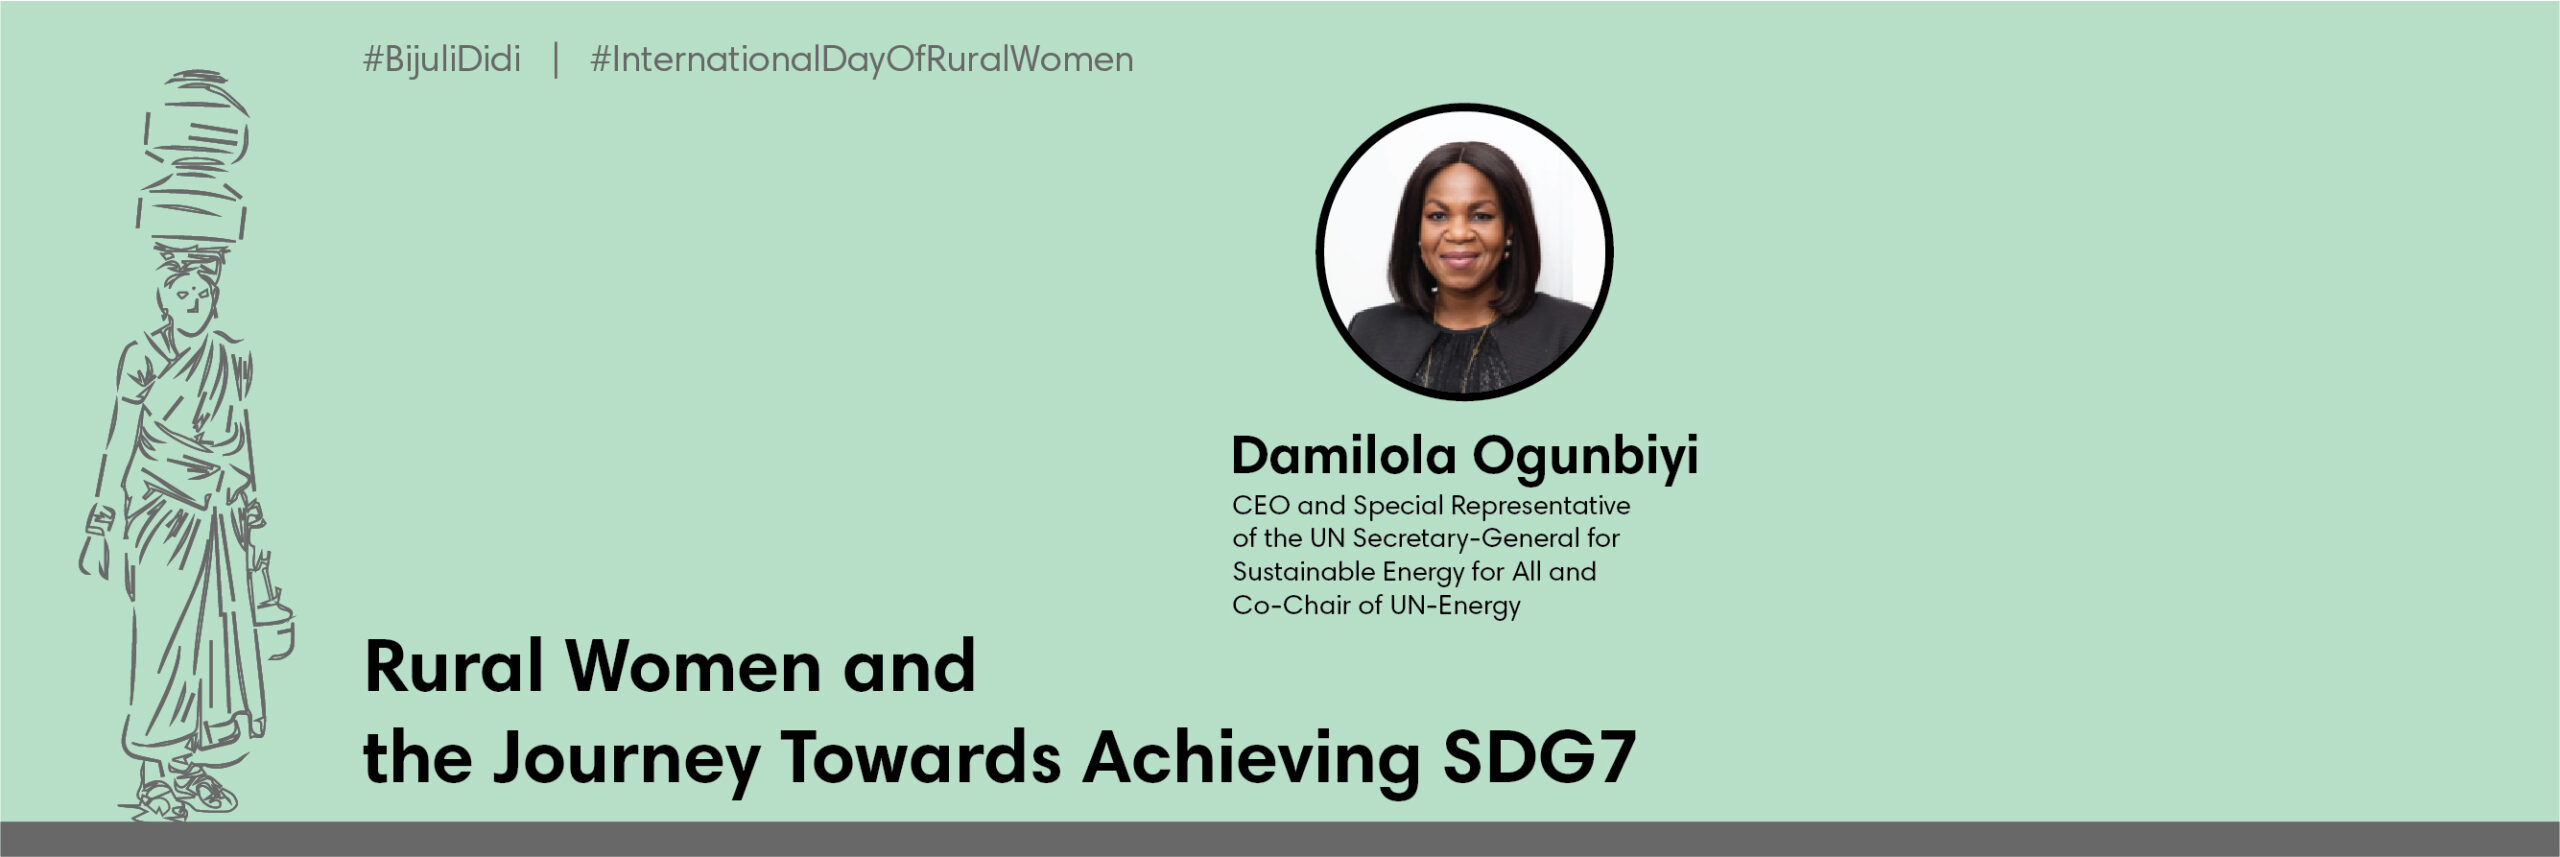 Rural women and the journey towards achieving SDG7